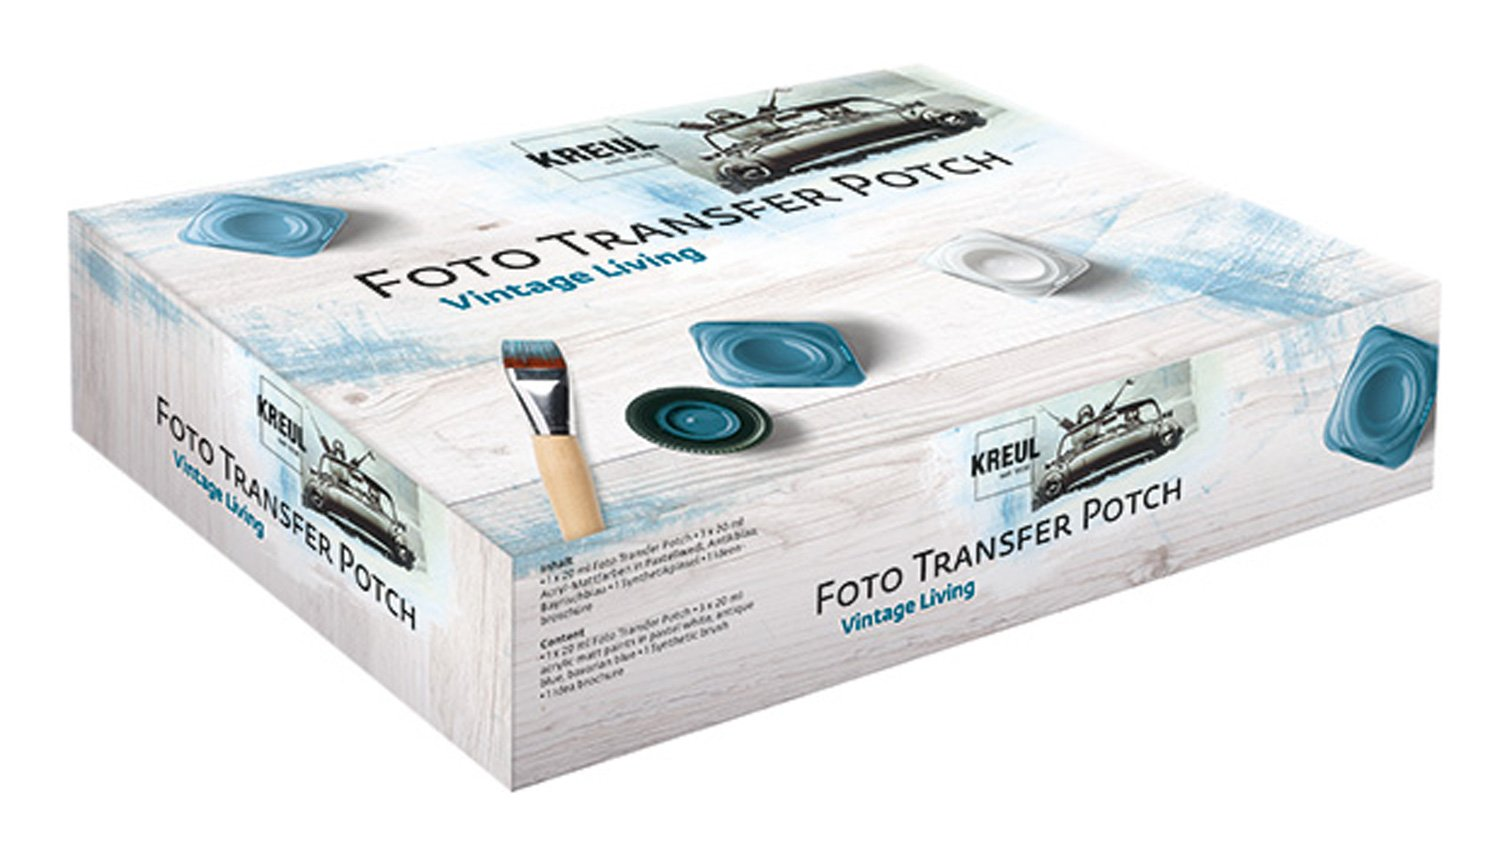 Foto Transfer Potch Vintage Living Kreul 49990 in Kartonbox